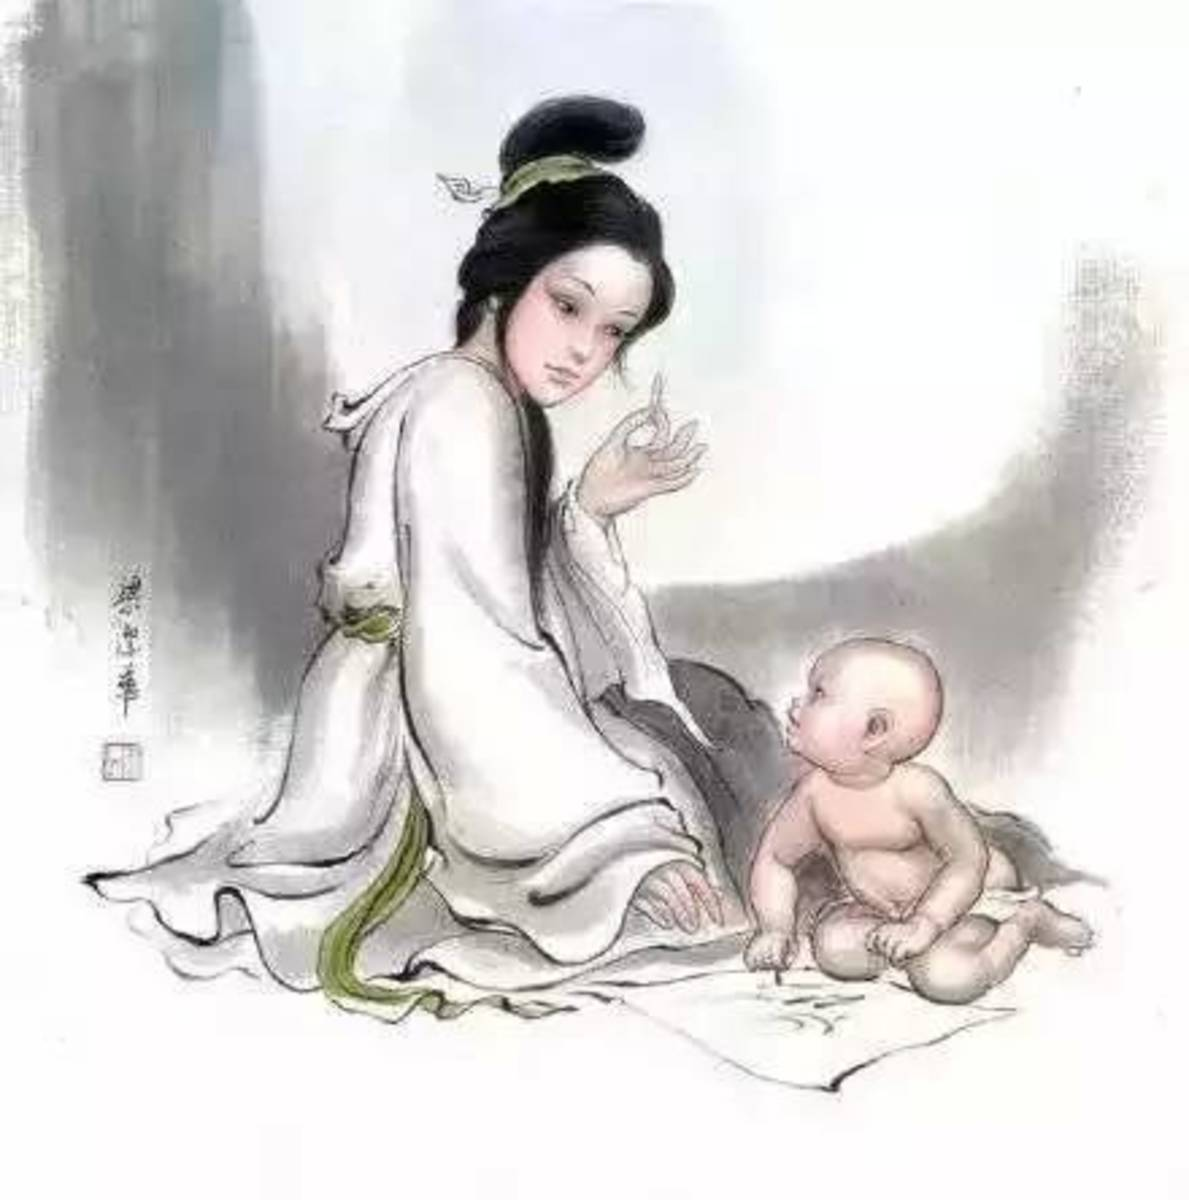 mothering-the-mother-what-happens-after-giving-birth-in-china